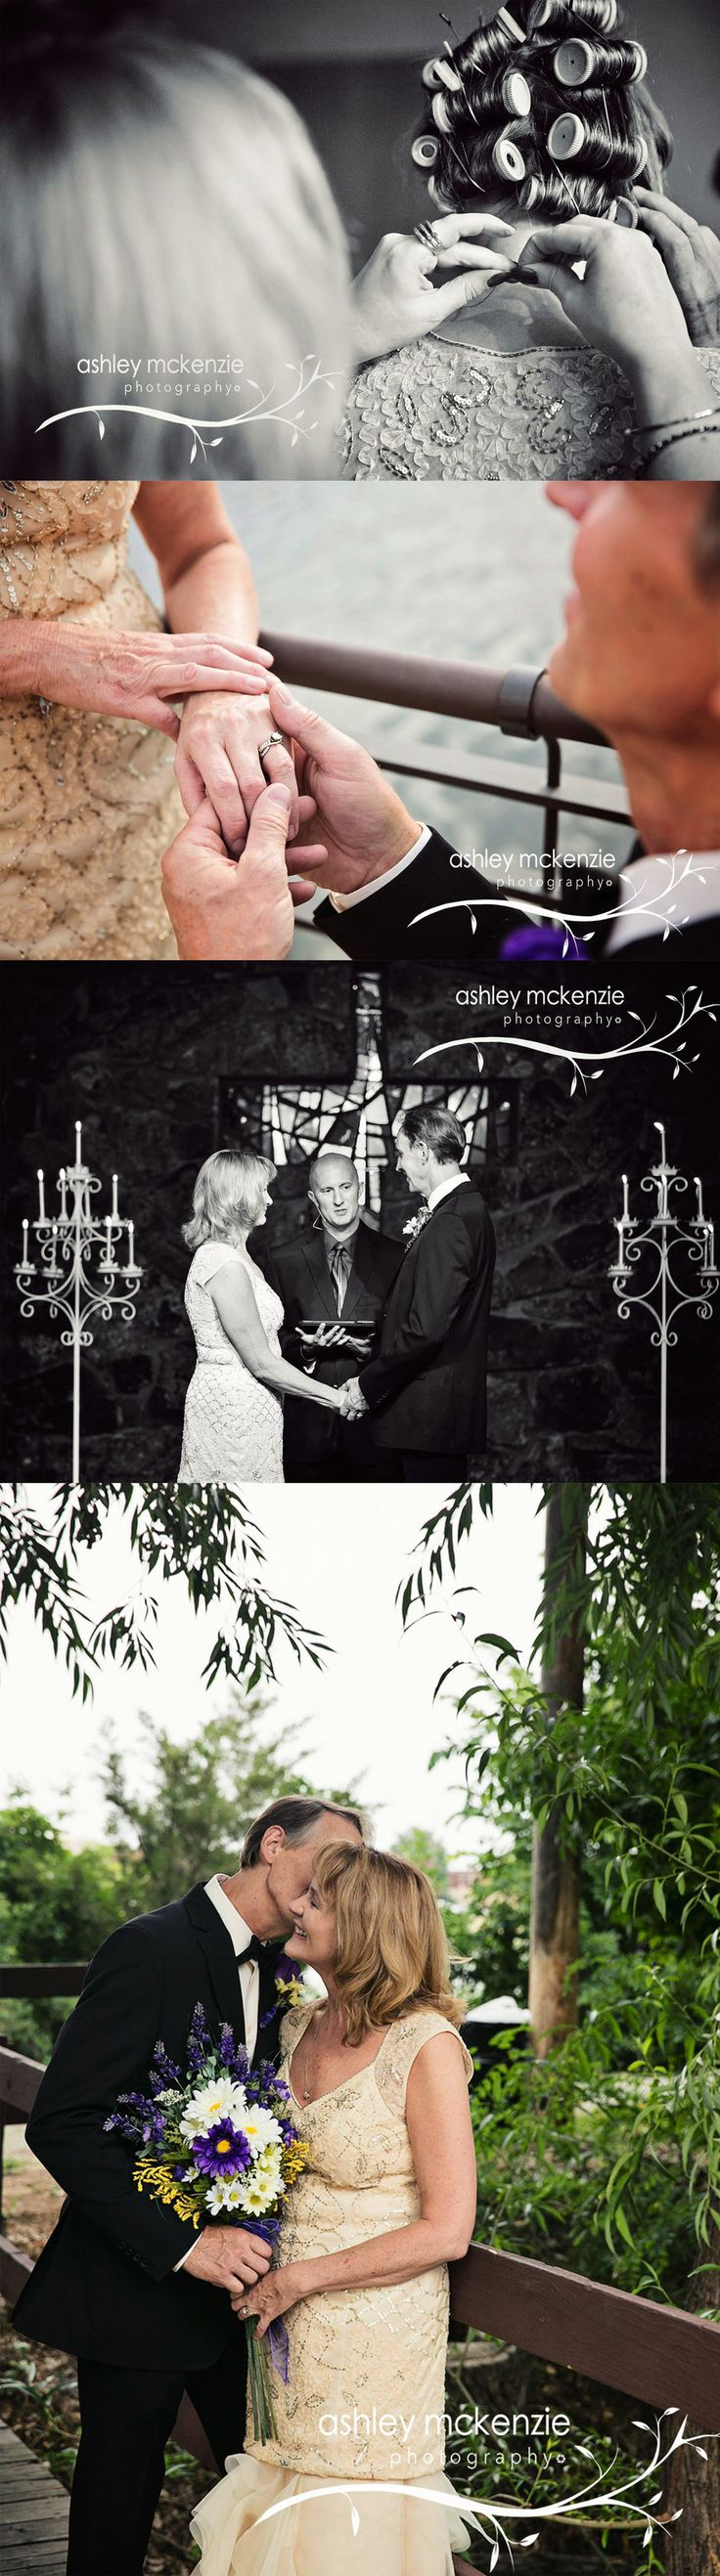 Wedding Photography by Ashley Mckenzie Photography in Denver, CO